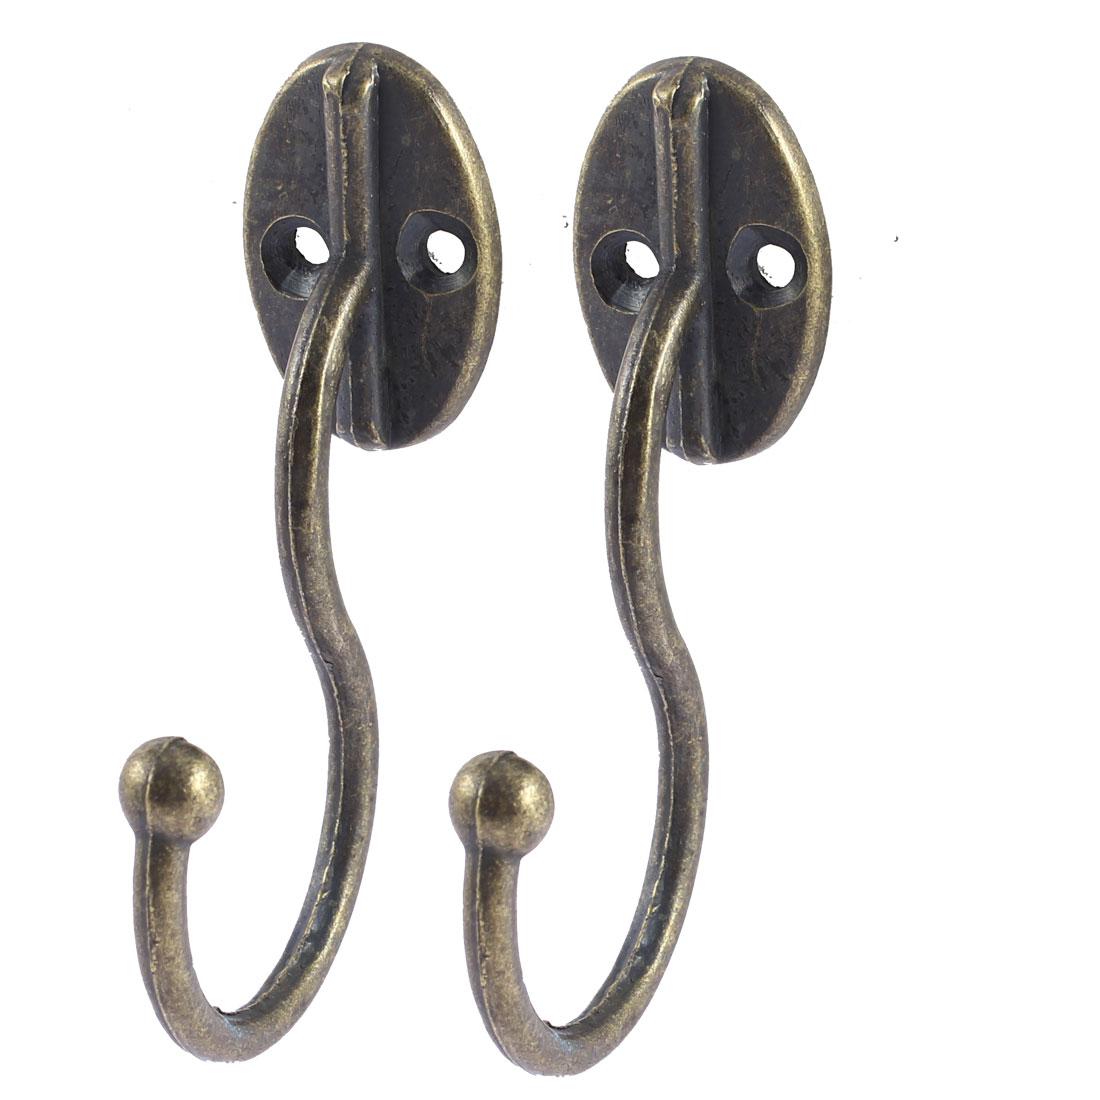 Metal Double Holes Wall Mounted Single Hanger Bronze Tone 2 Pcs